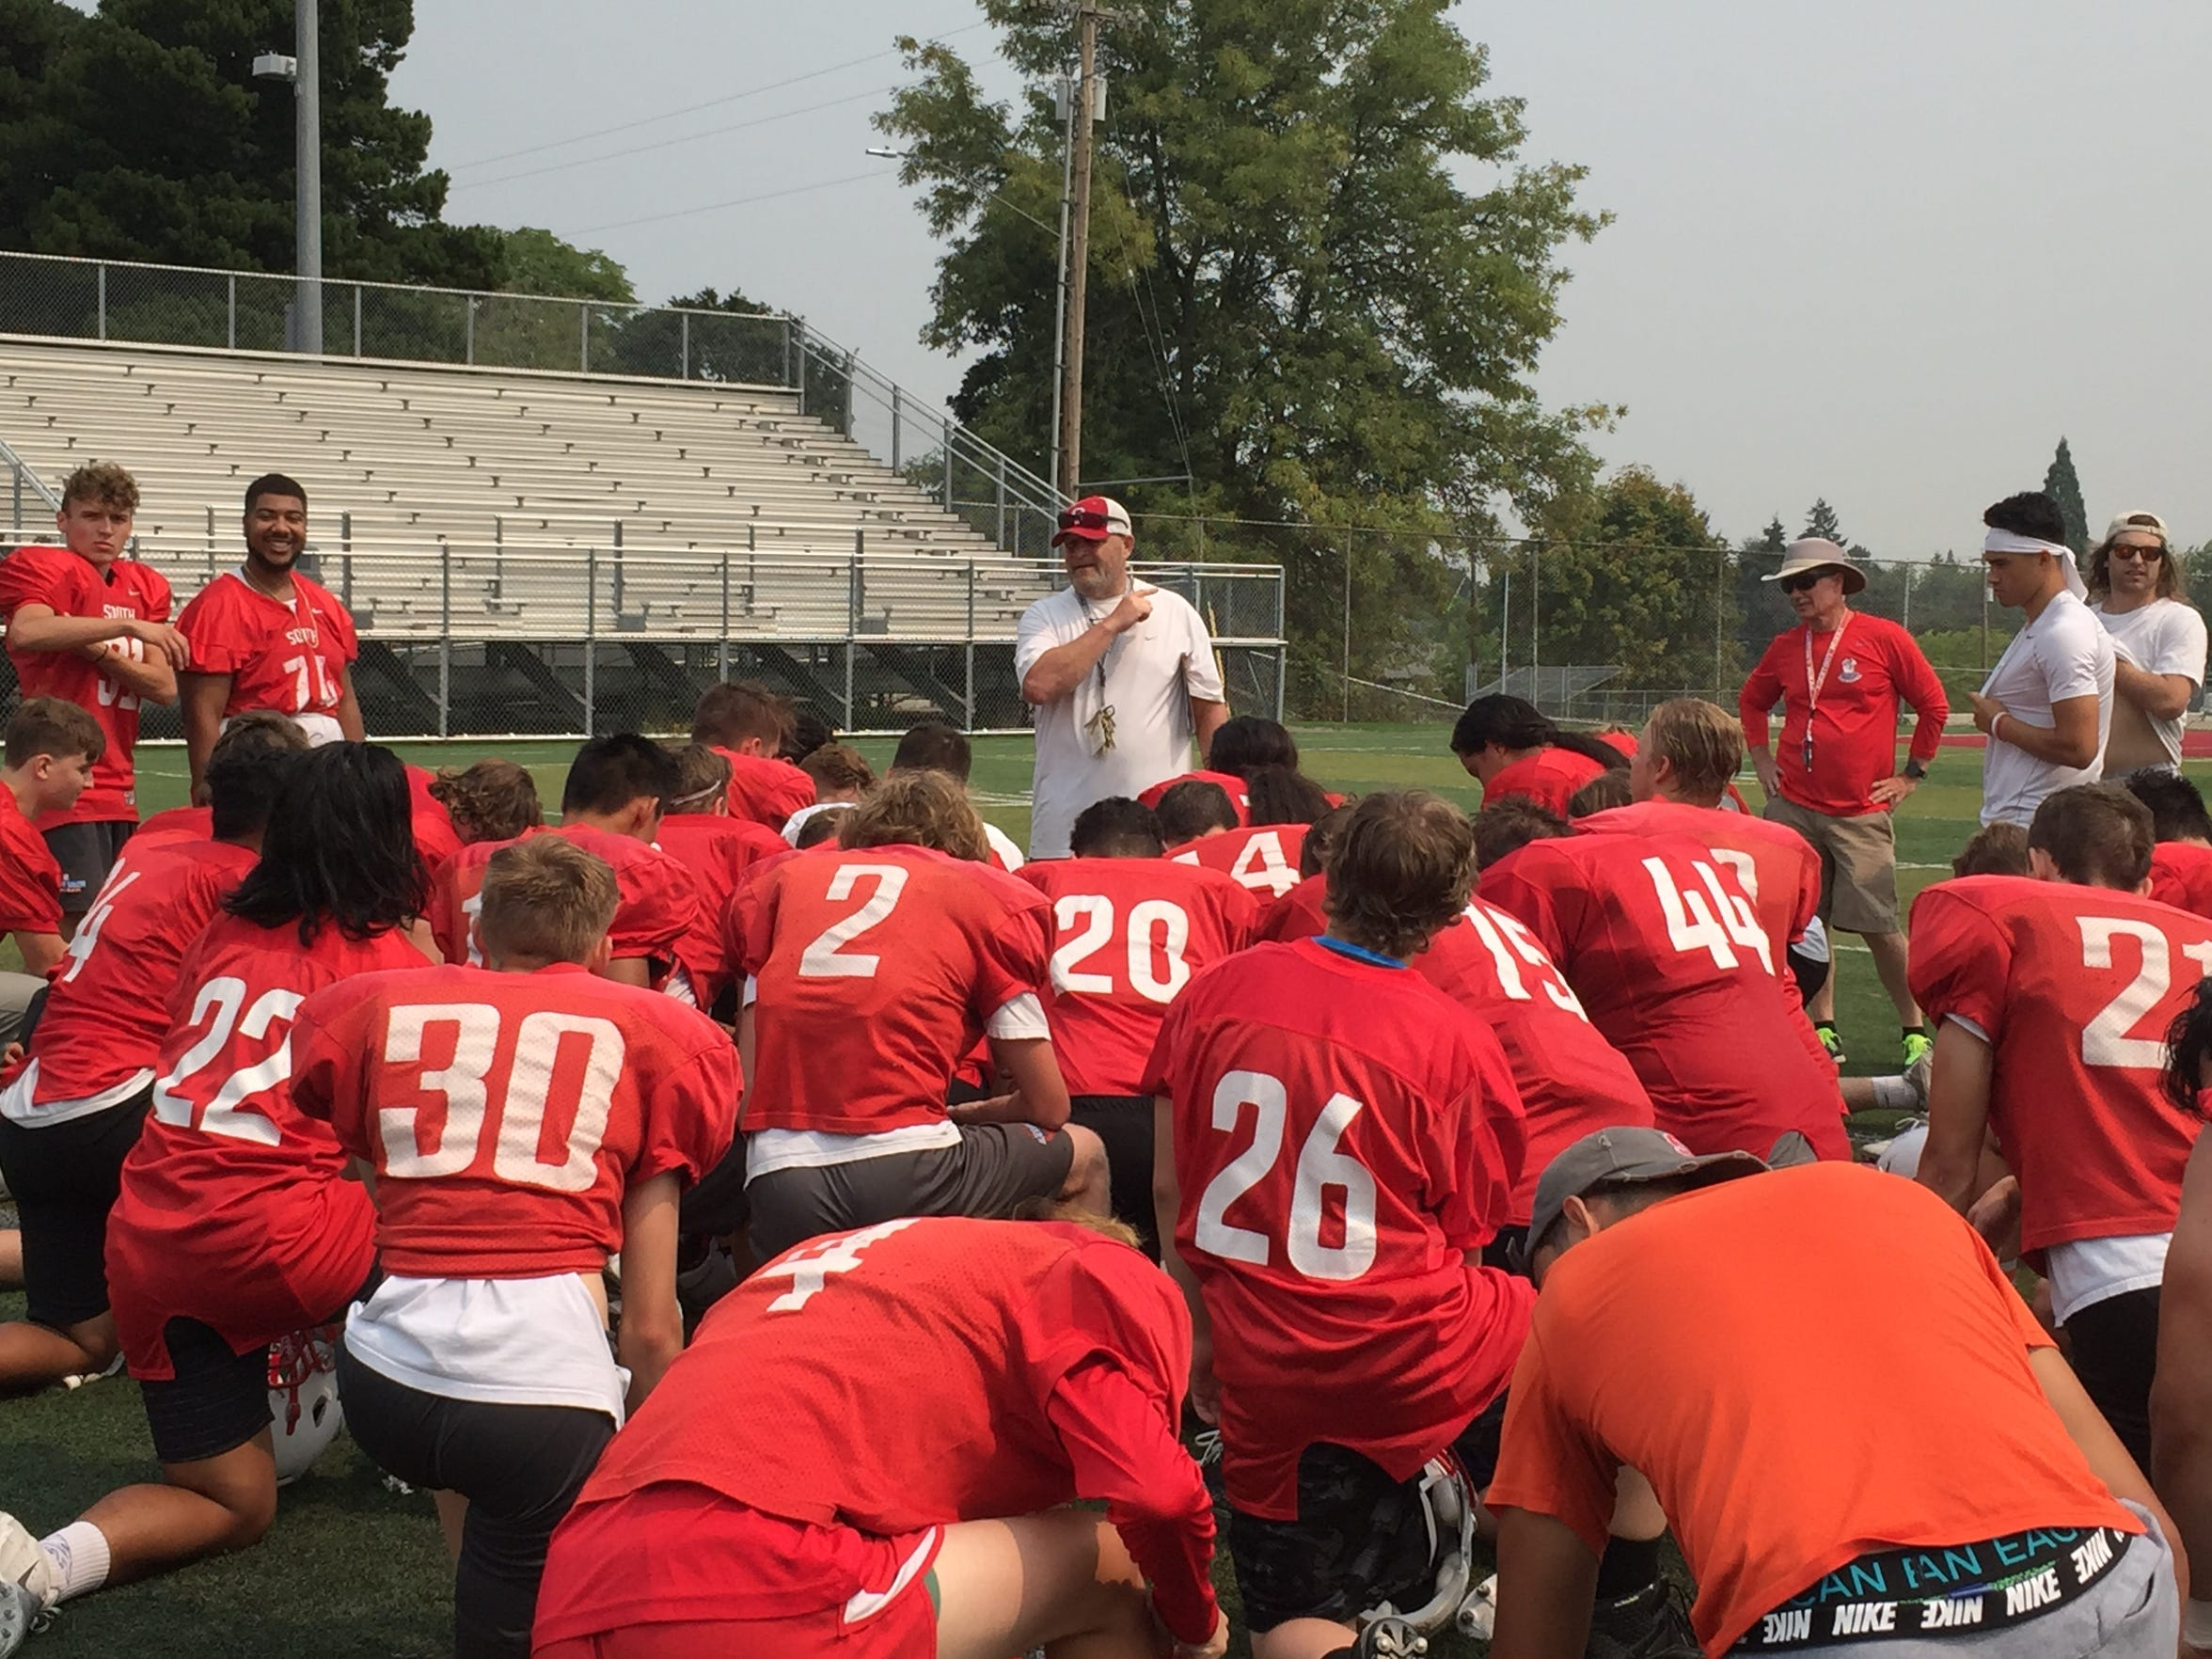 South Salem coach Scott DuFault talks to his team after practice on Aug. 15, 2018.